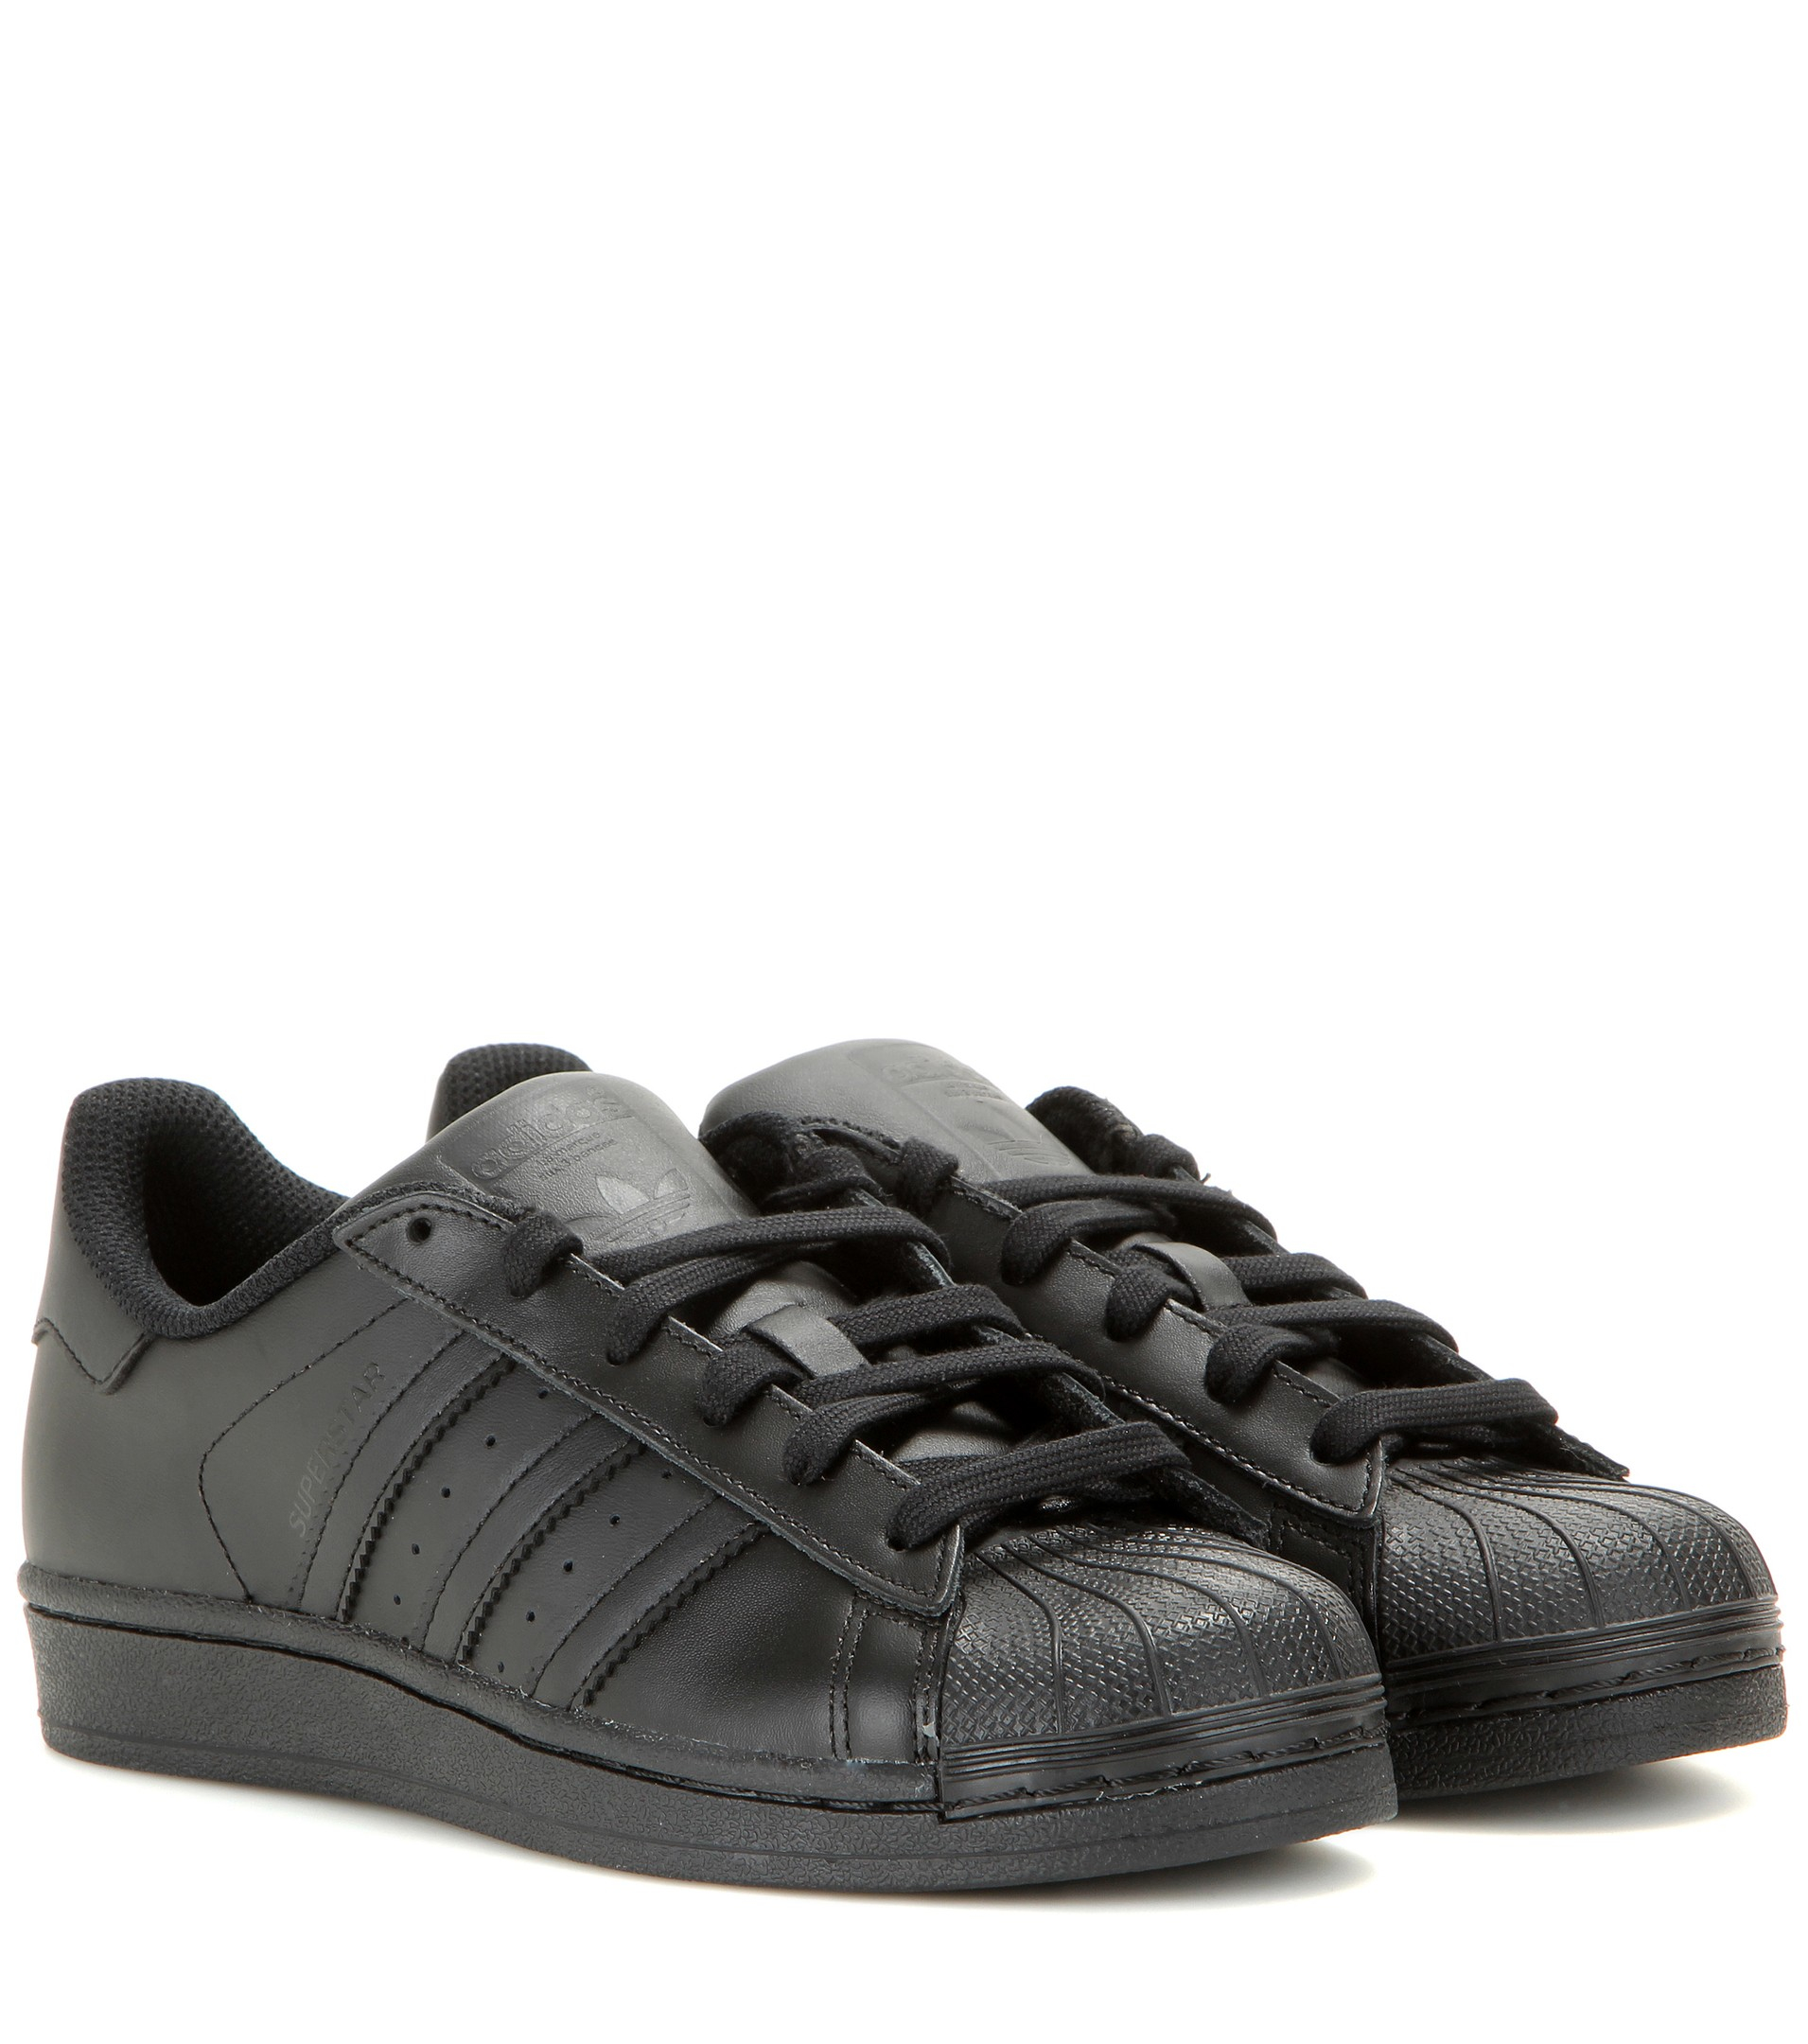 adidas superstar crocodile noir